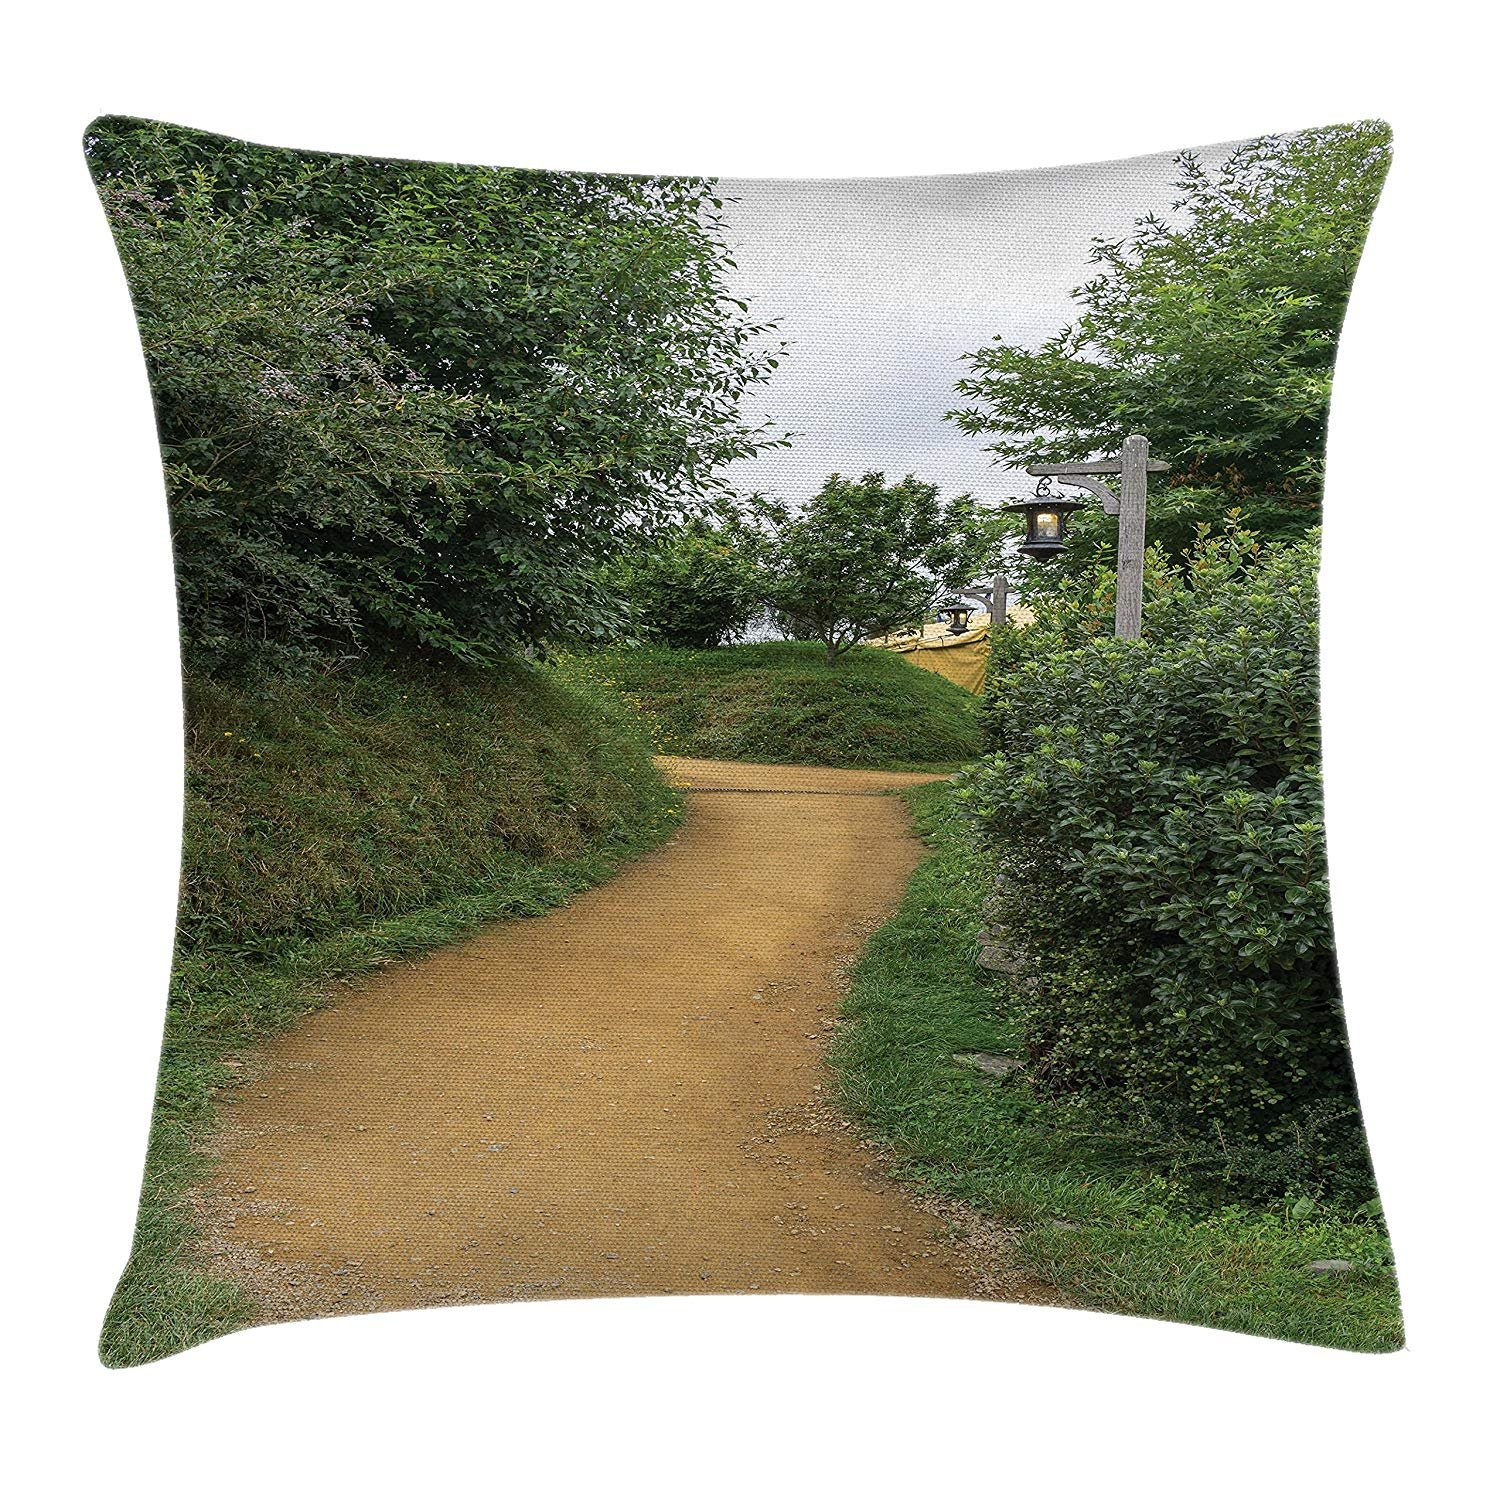 Queen Area Hobbits Elf Path in Woods of Hobbit Land in The Shire New Zealand Movie Print Square Throw Pillow Covers Cushion Case for Sofa Bedroom Car 18x18 Inch, Green Brown